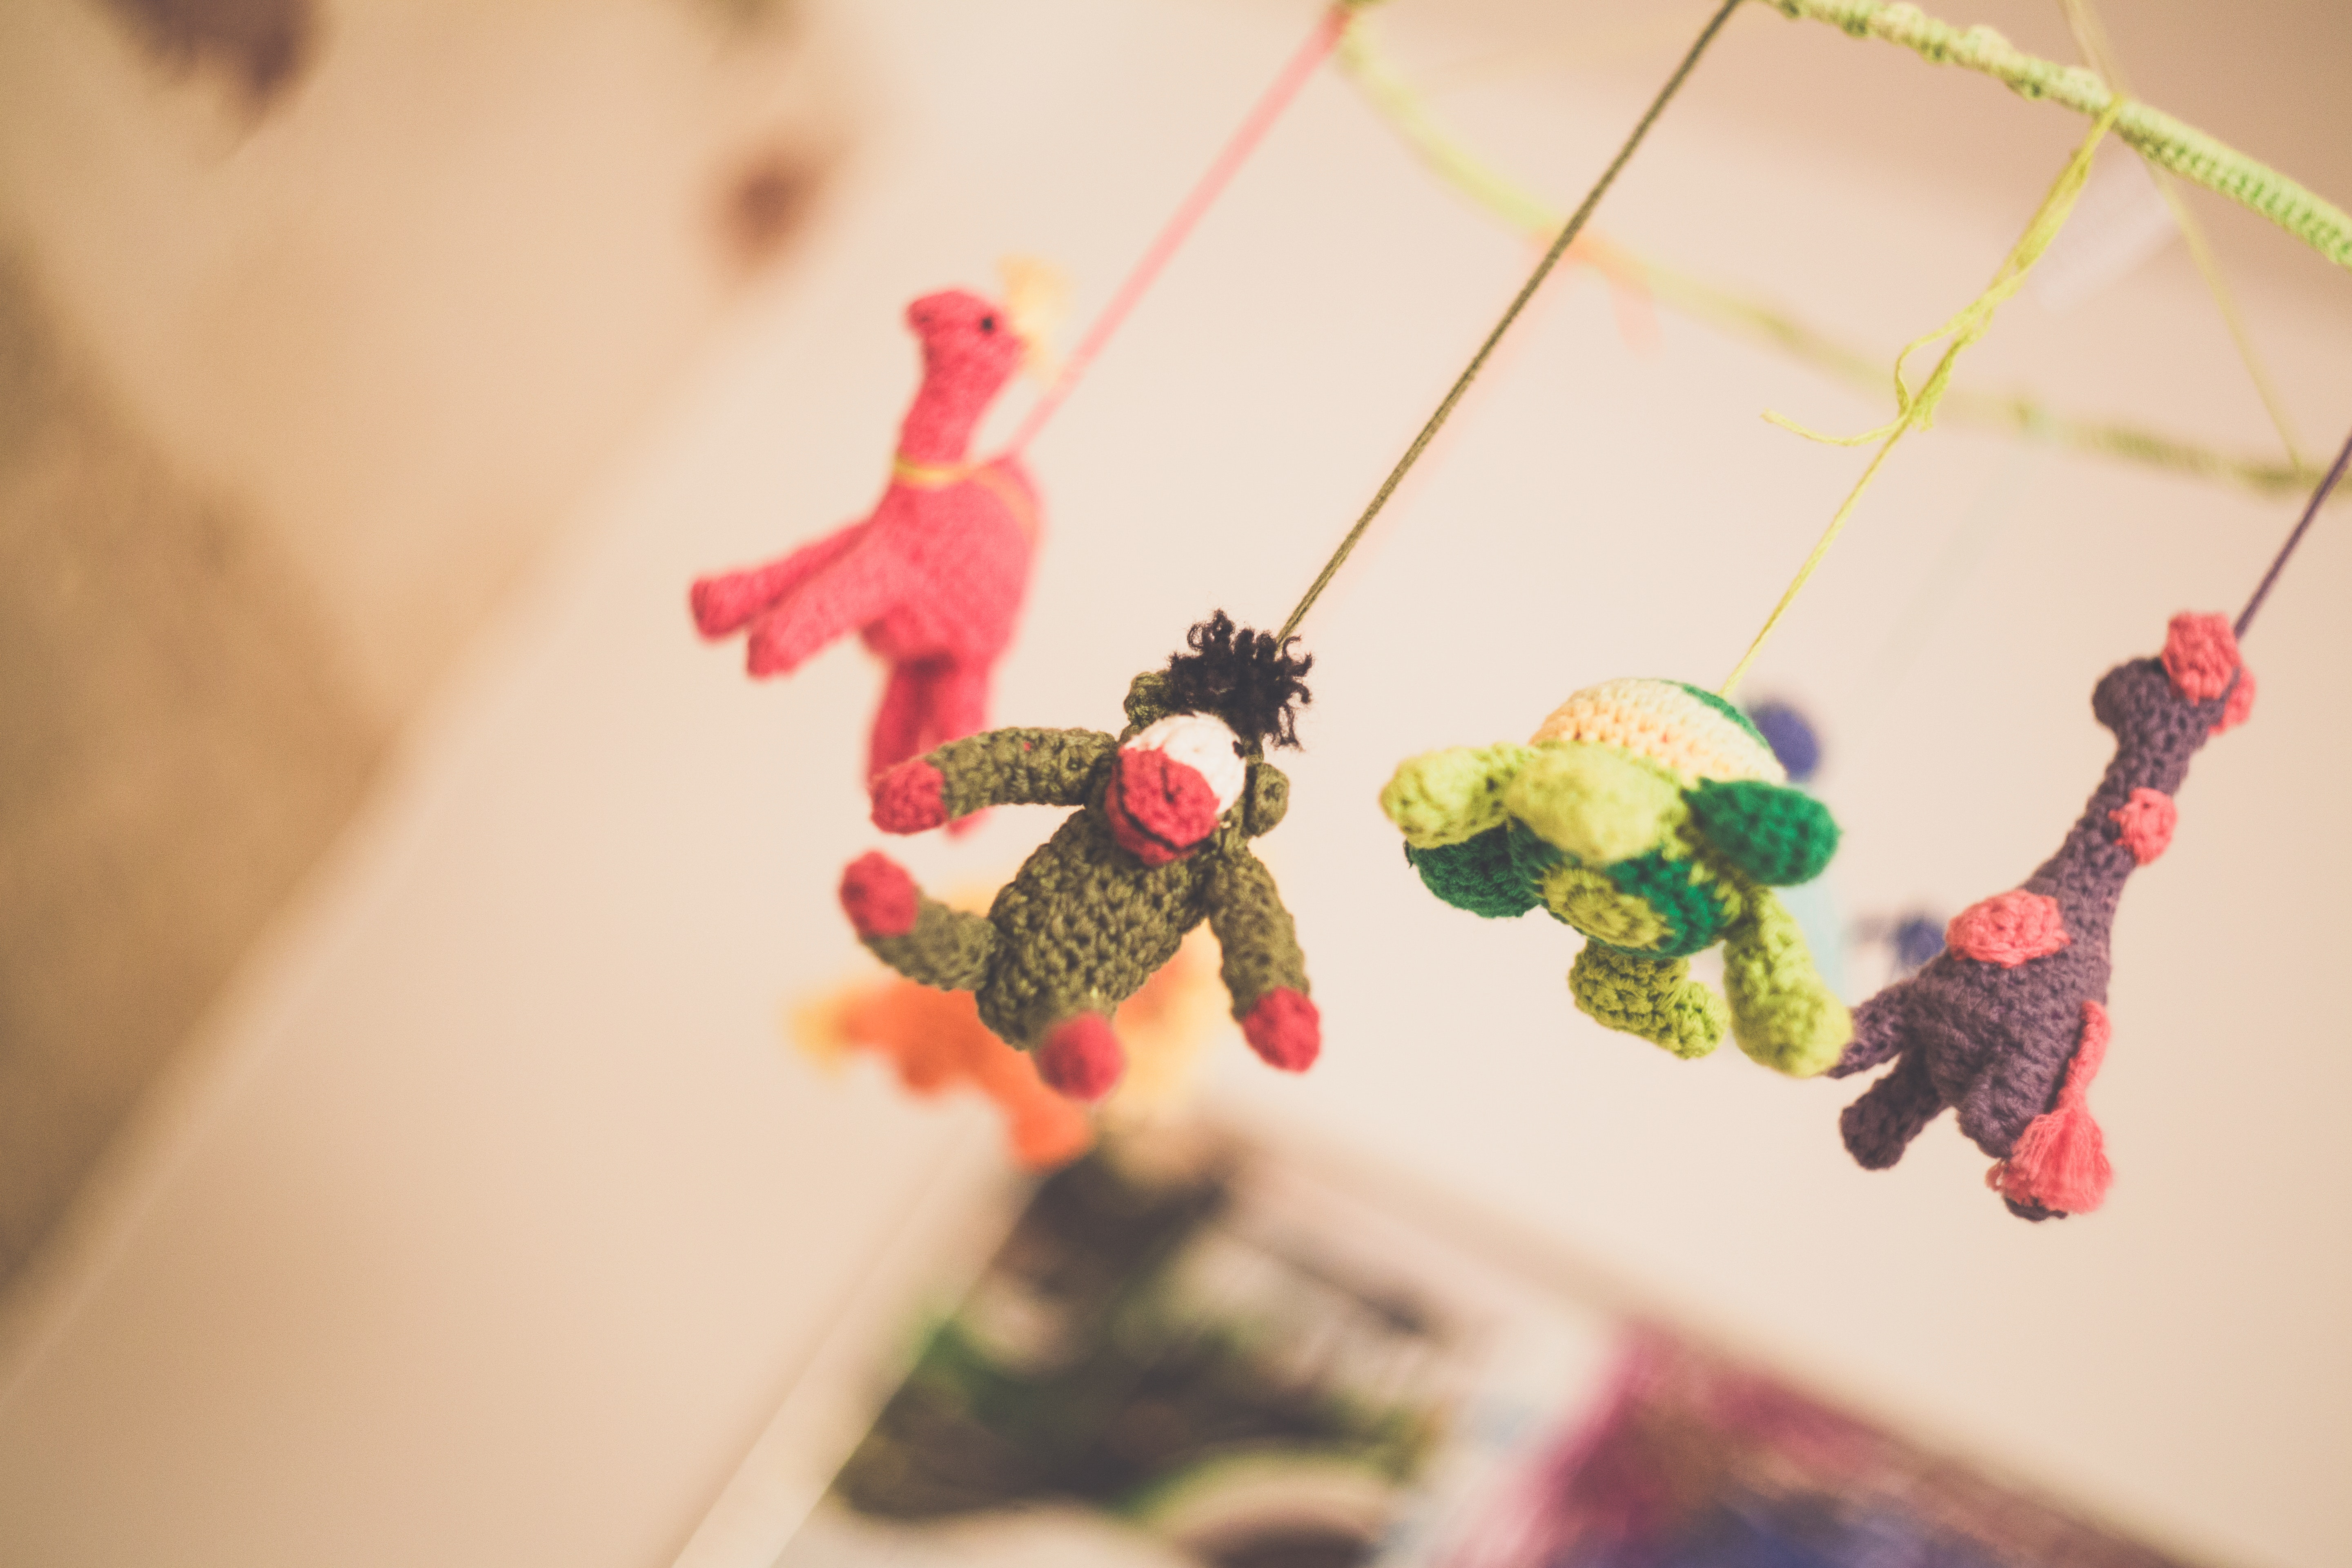 Baby's Knitted Mobile, Animal, Flora, Toy figure, Sweet, HQ Photo